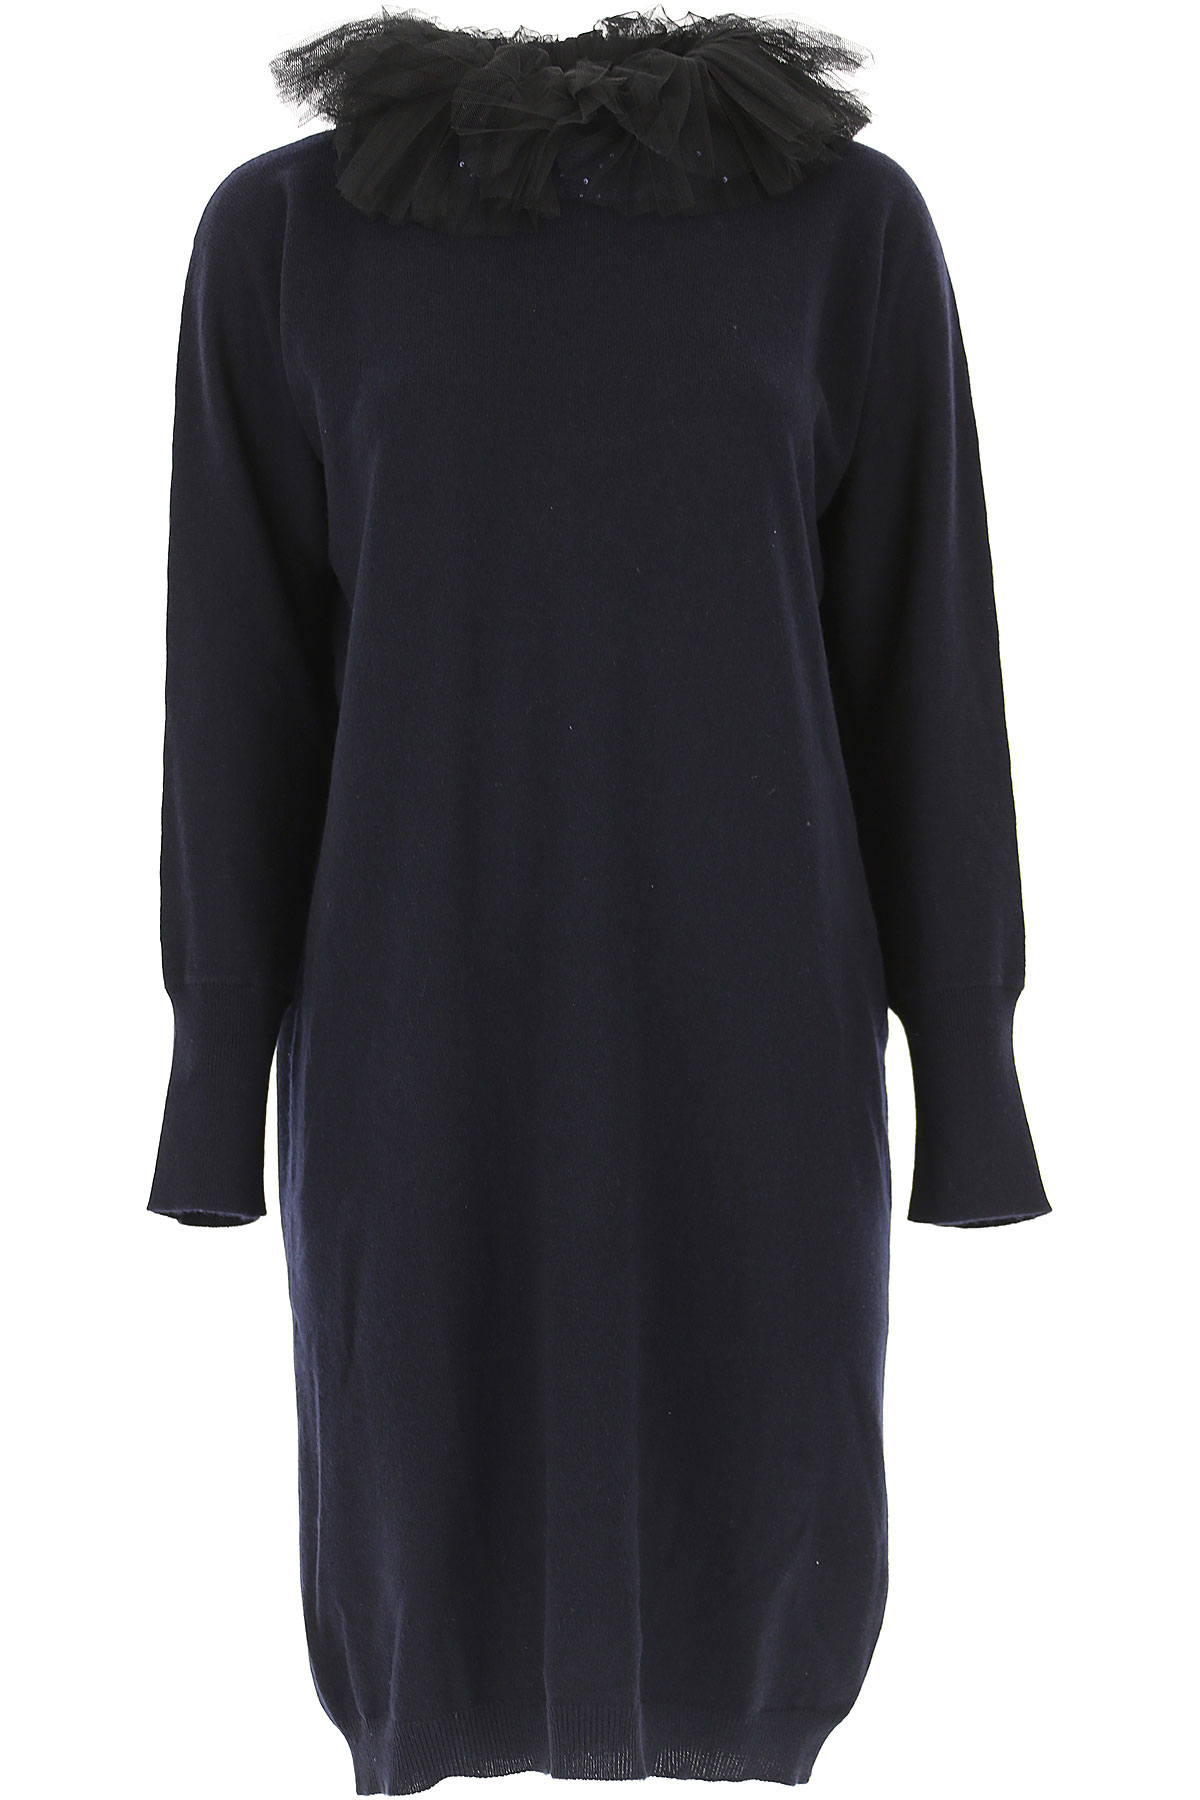 Image of Fabiana Filippi Dress for Women, Evening Cocktail Party, Blue Ink, Cashmere, 2017, 2 4